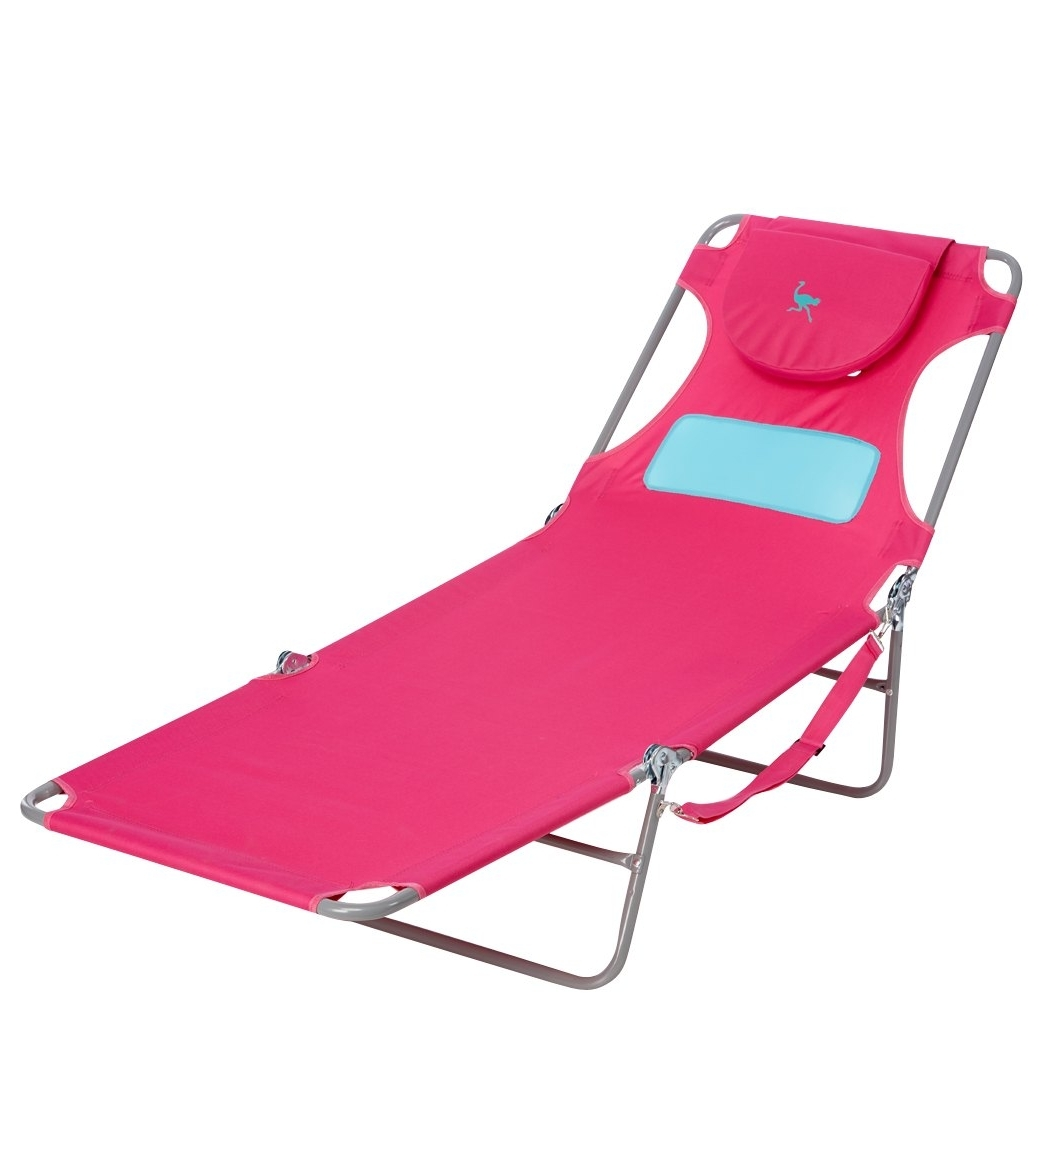 Ostrich Ladies' Face Down Chaise Lounge W/ Chest Cavity At Throughout 2018 Ostrich Chaise Lounges (View 14 of 15)